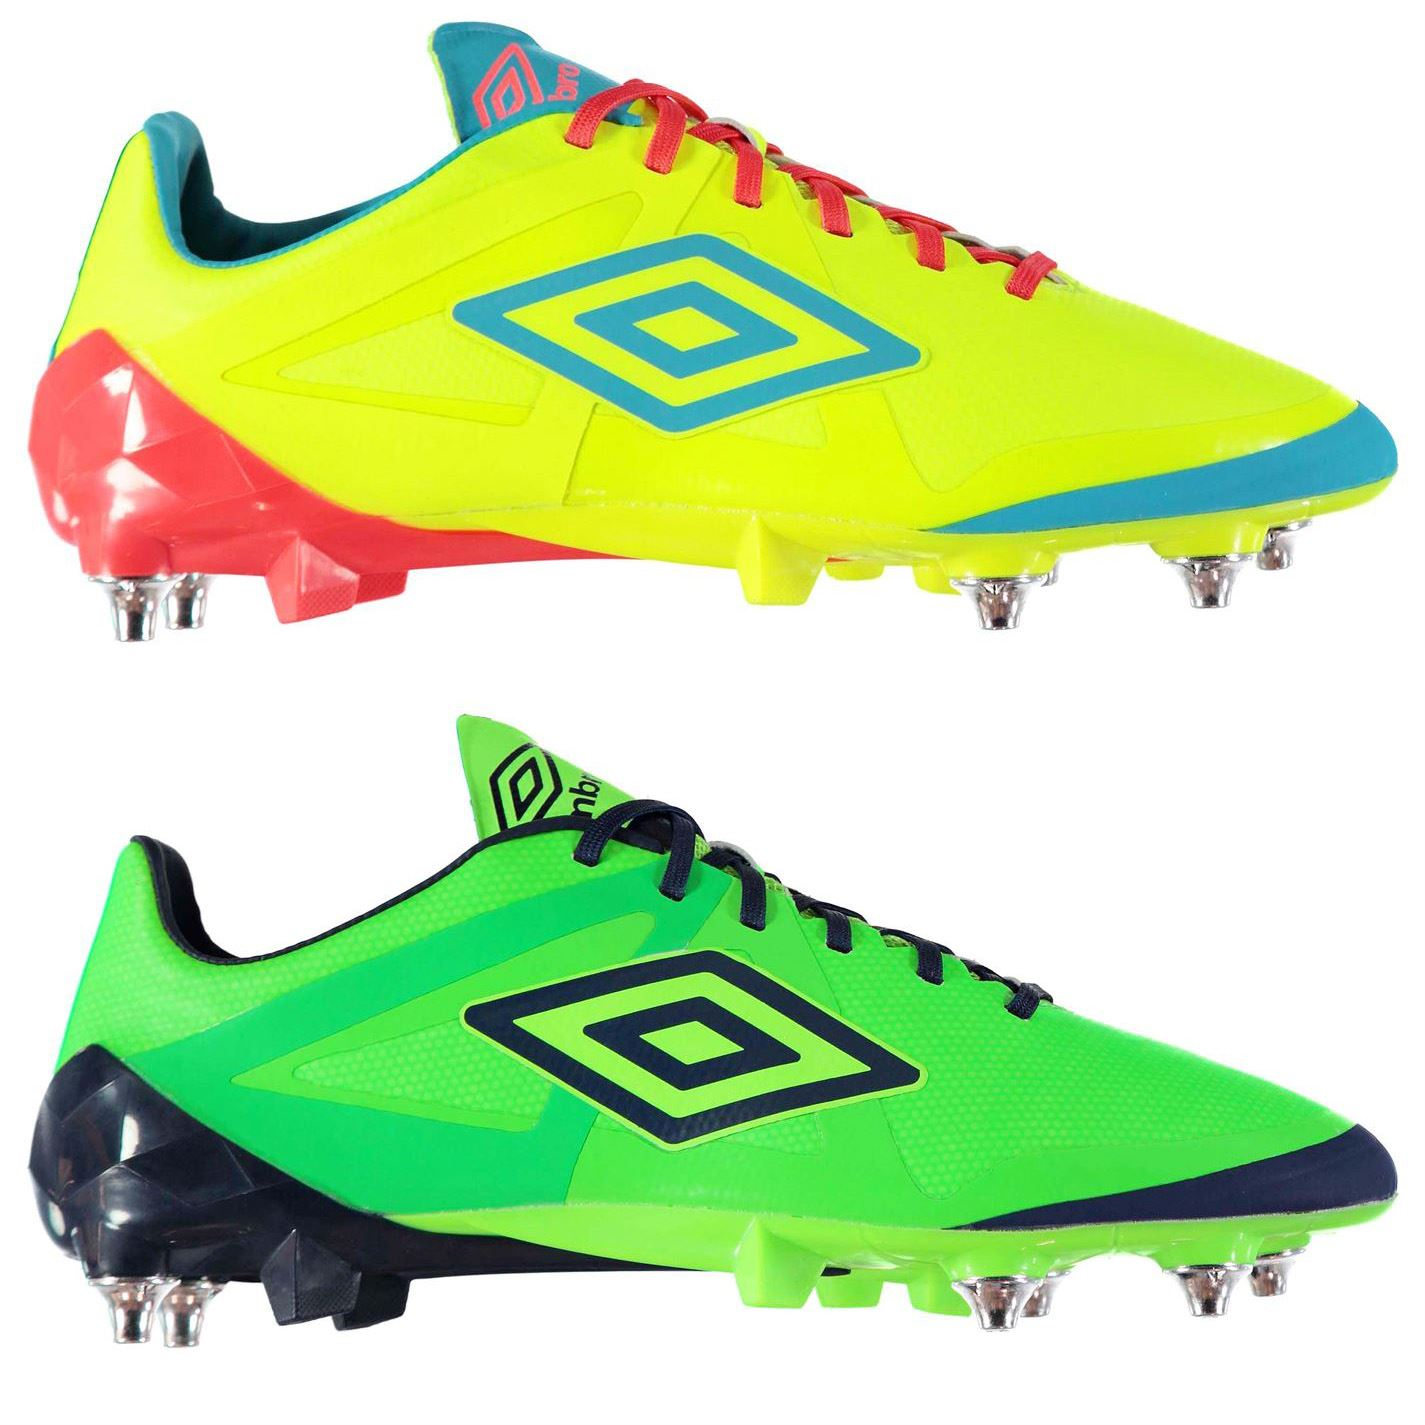 568ed7aa6 ... Umbro Velocita Pro SG Soft Ground Football Boots Mens Soccer Shoes  Cleats ...